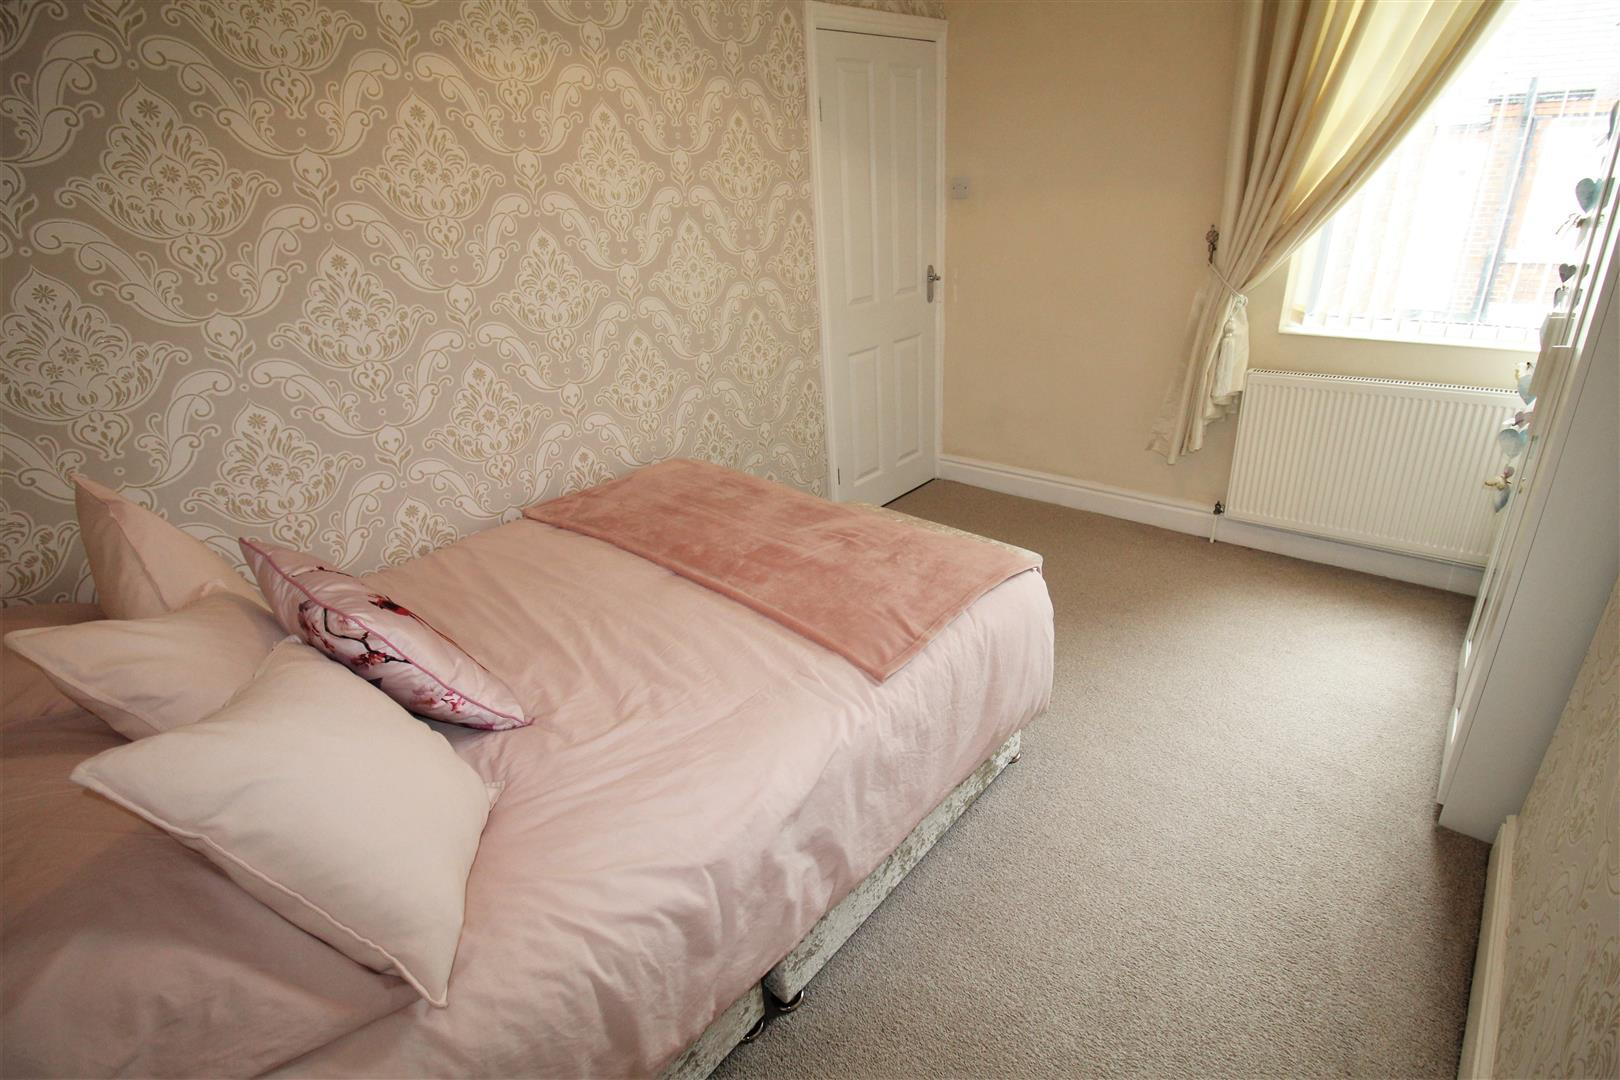 3 Bedrooms, House - Mid Terrace, Hornsey Road, Liverpool